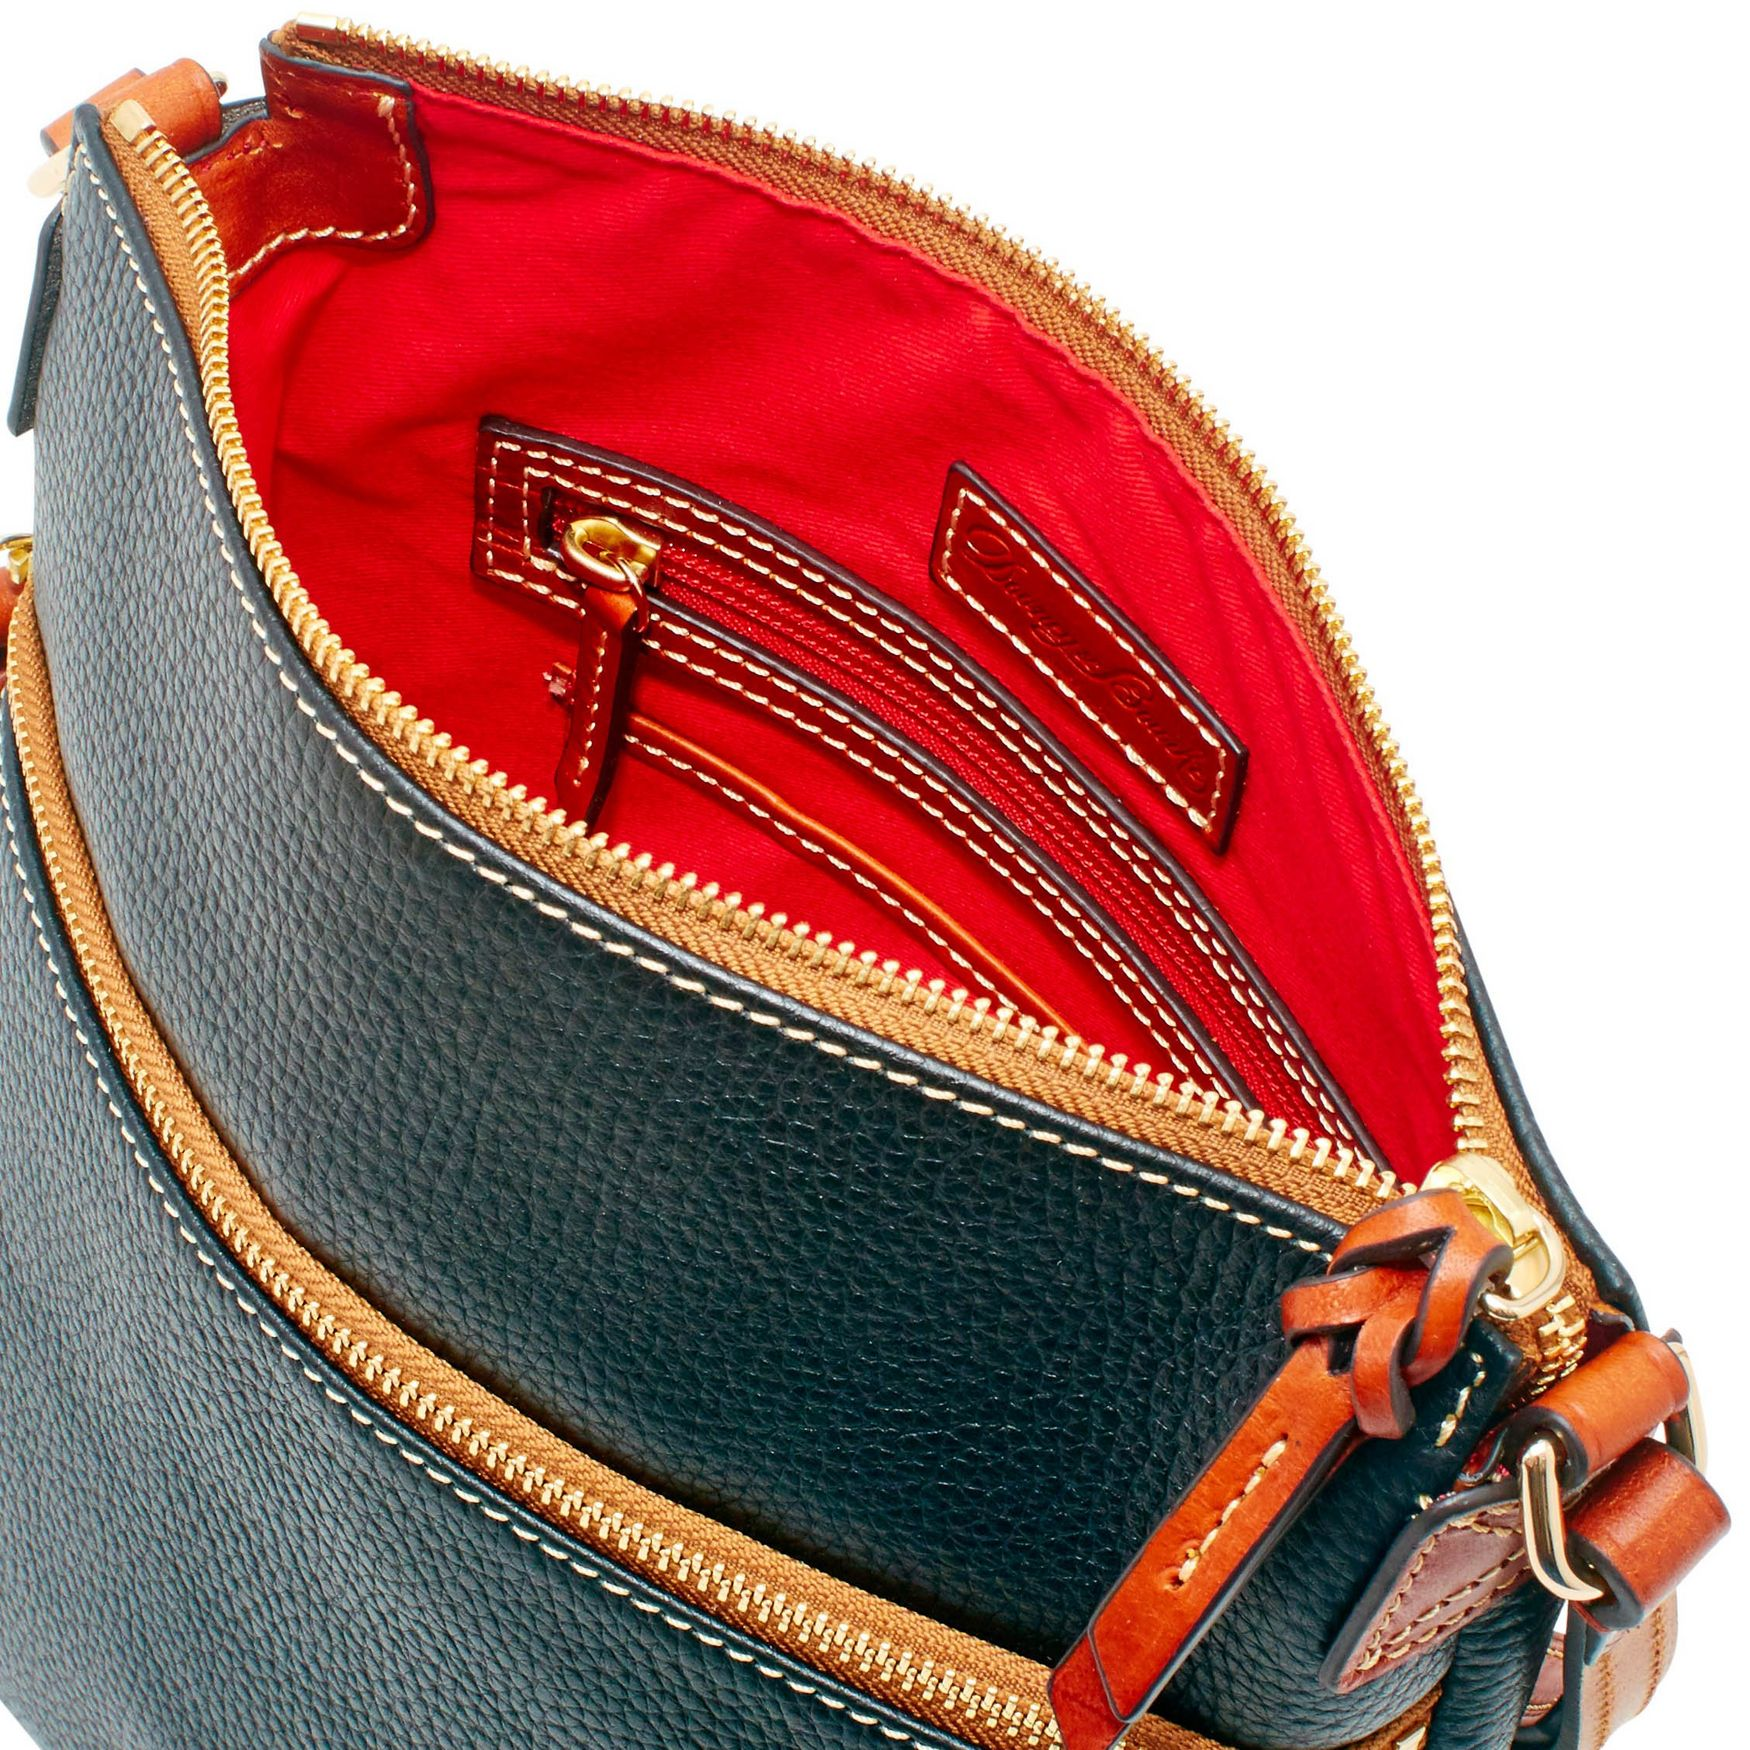 Dooney-amp-Bourke-Pebble-Grain-Crossbody-Medium-Wristlet-Shoulder-Bag thumbnail 9